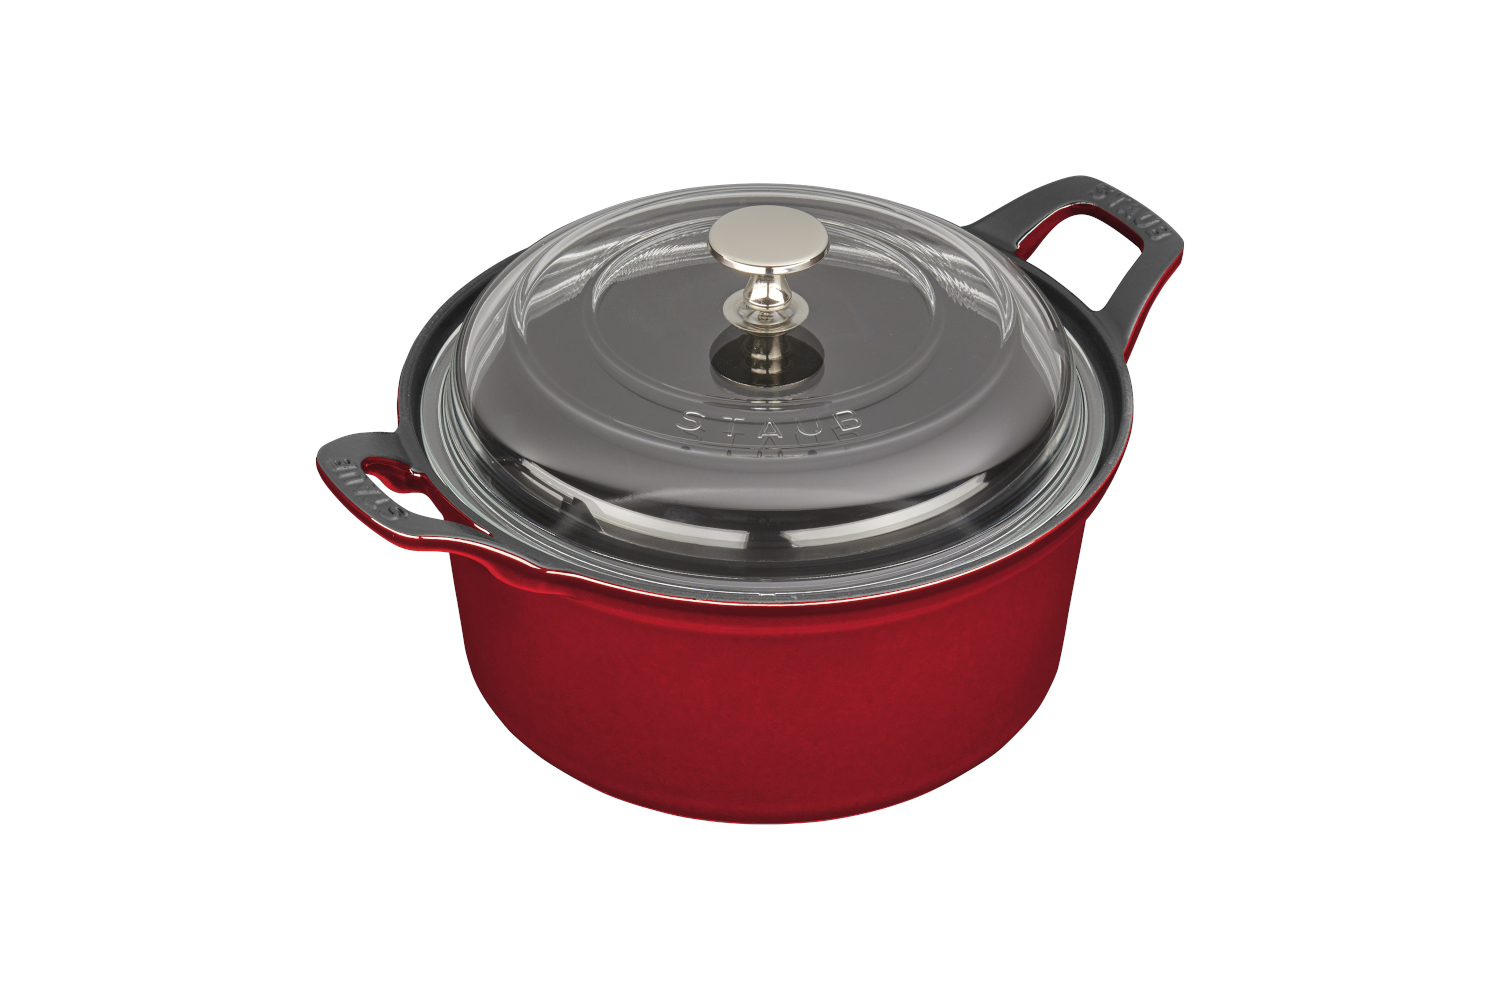 Staub Cast Iron 2 3/4 qt. Round La Coquette with Glass Lid - Cherry